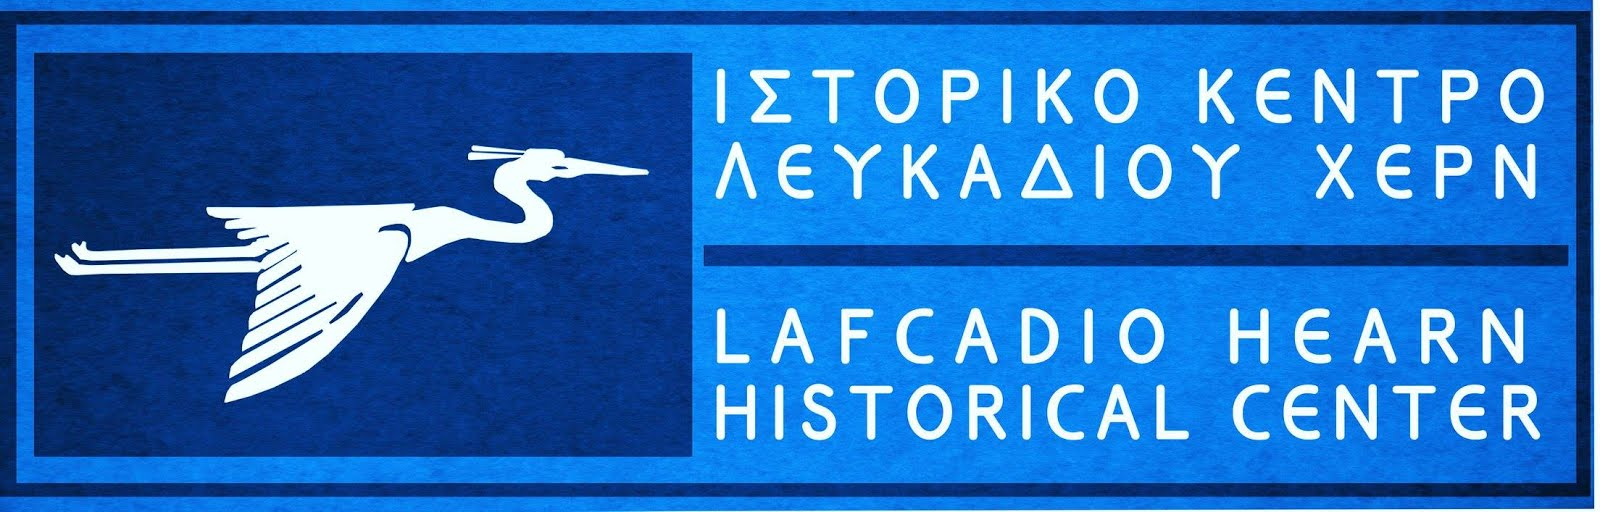 Lafcadio Hearn Historical Center Lefkada